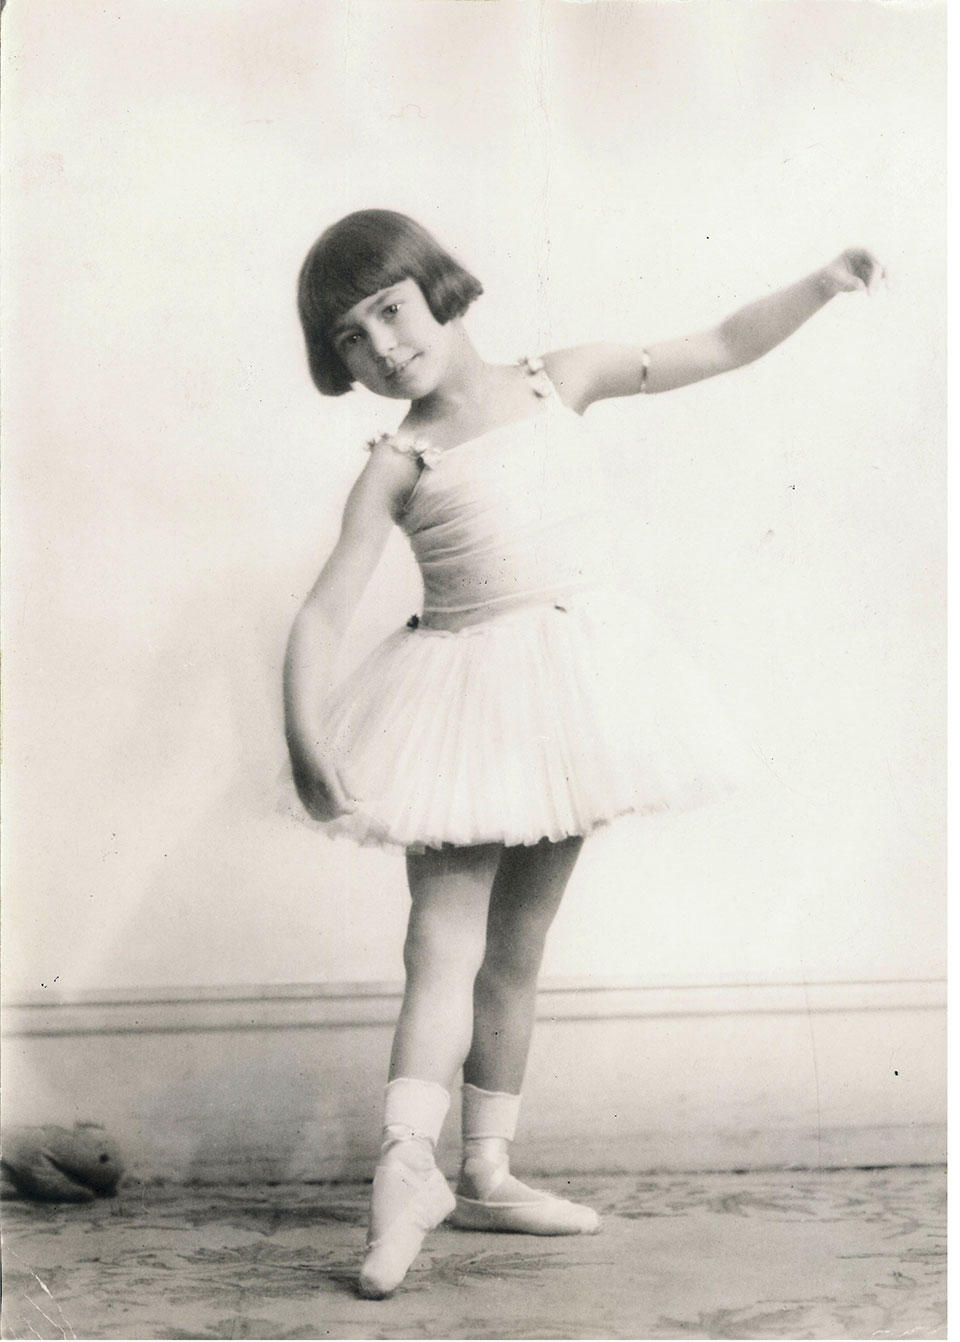 Margot-Fonteyn-aged-5.-Credit-unknown.jpg